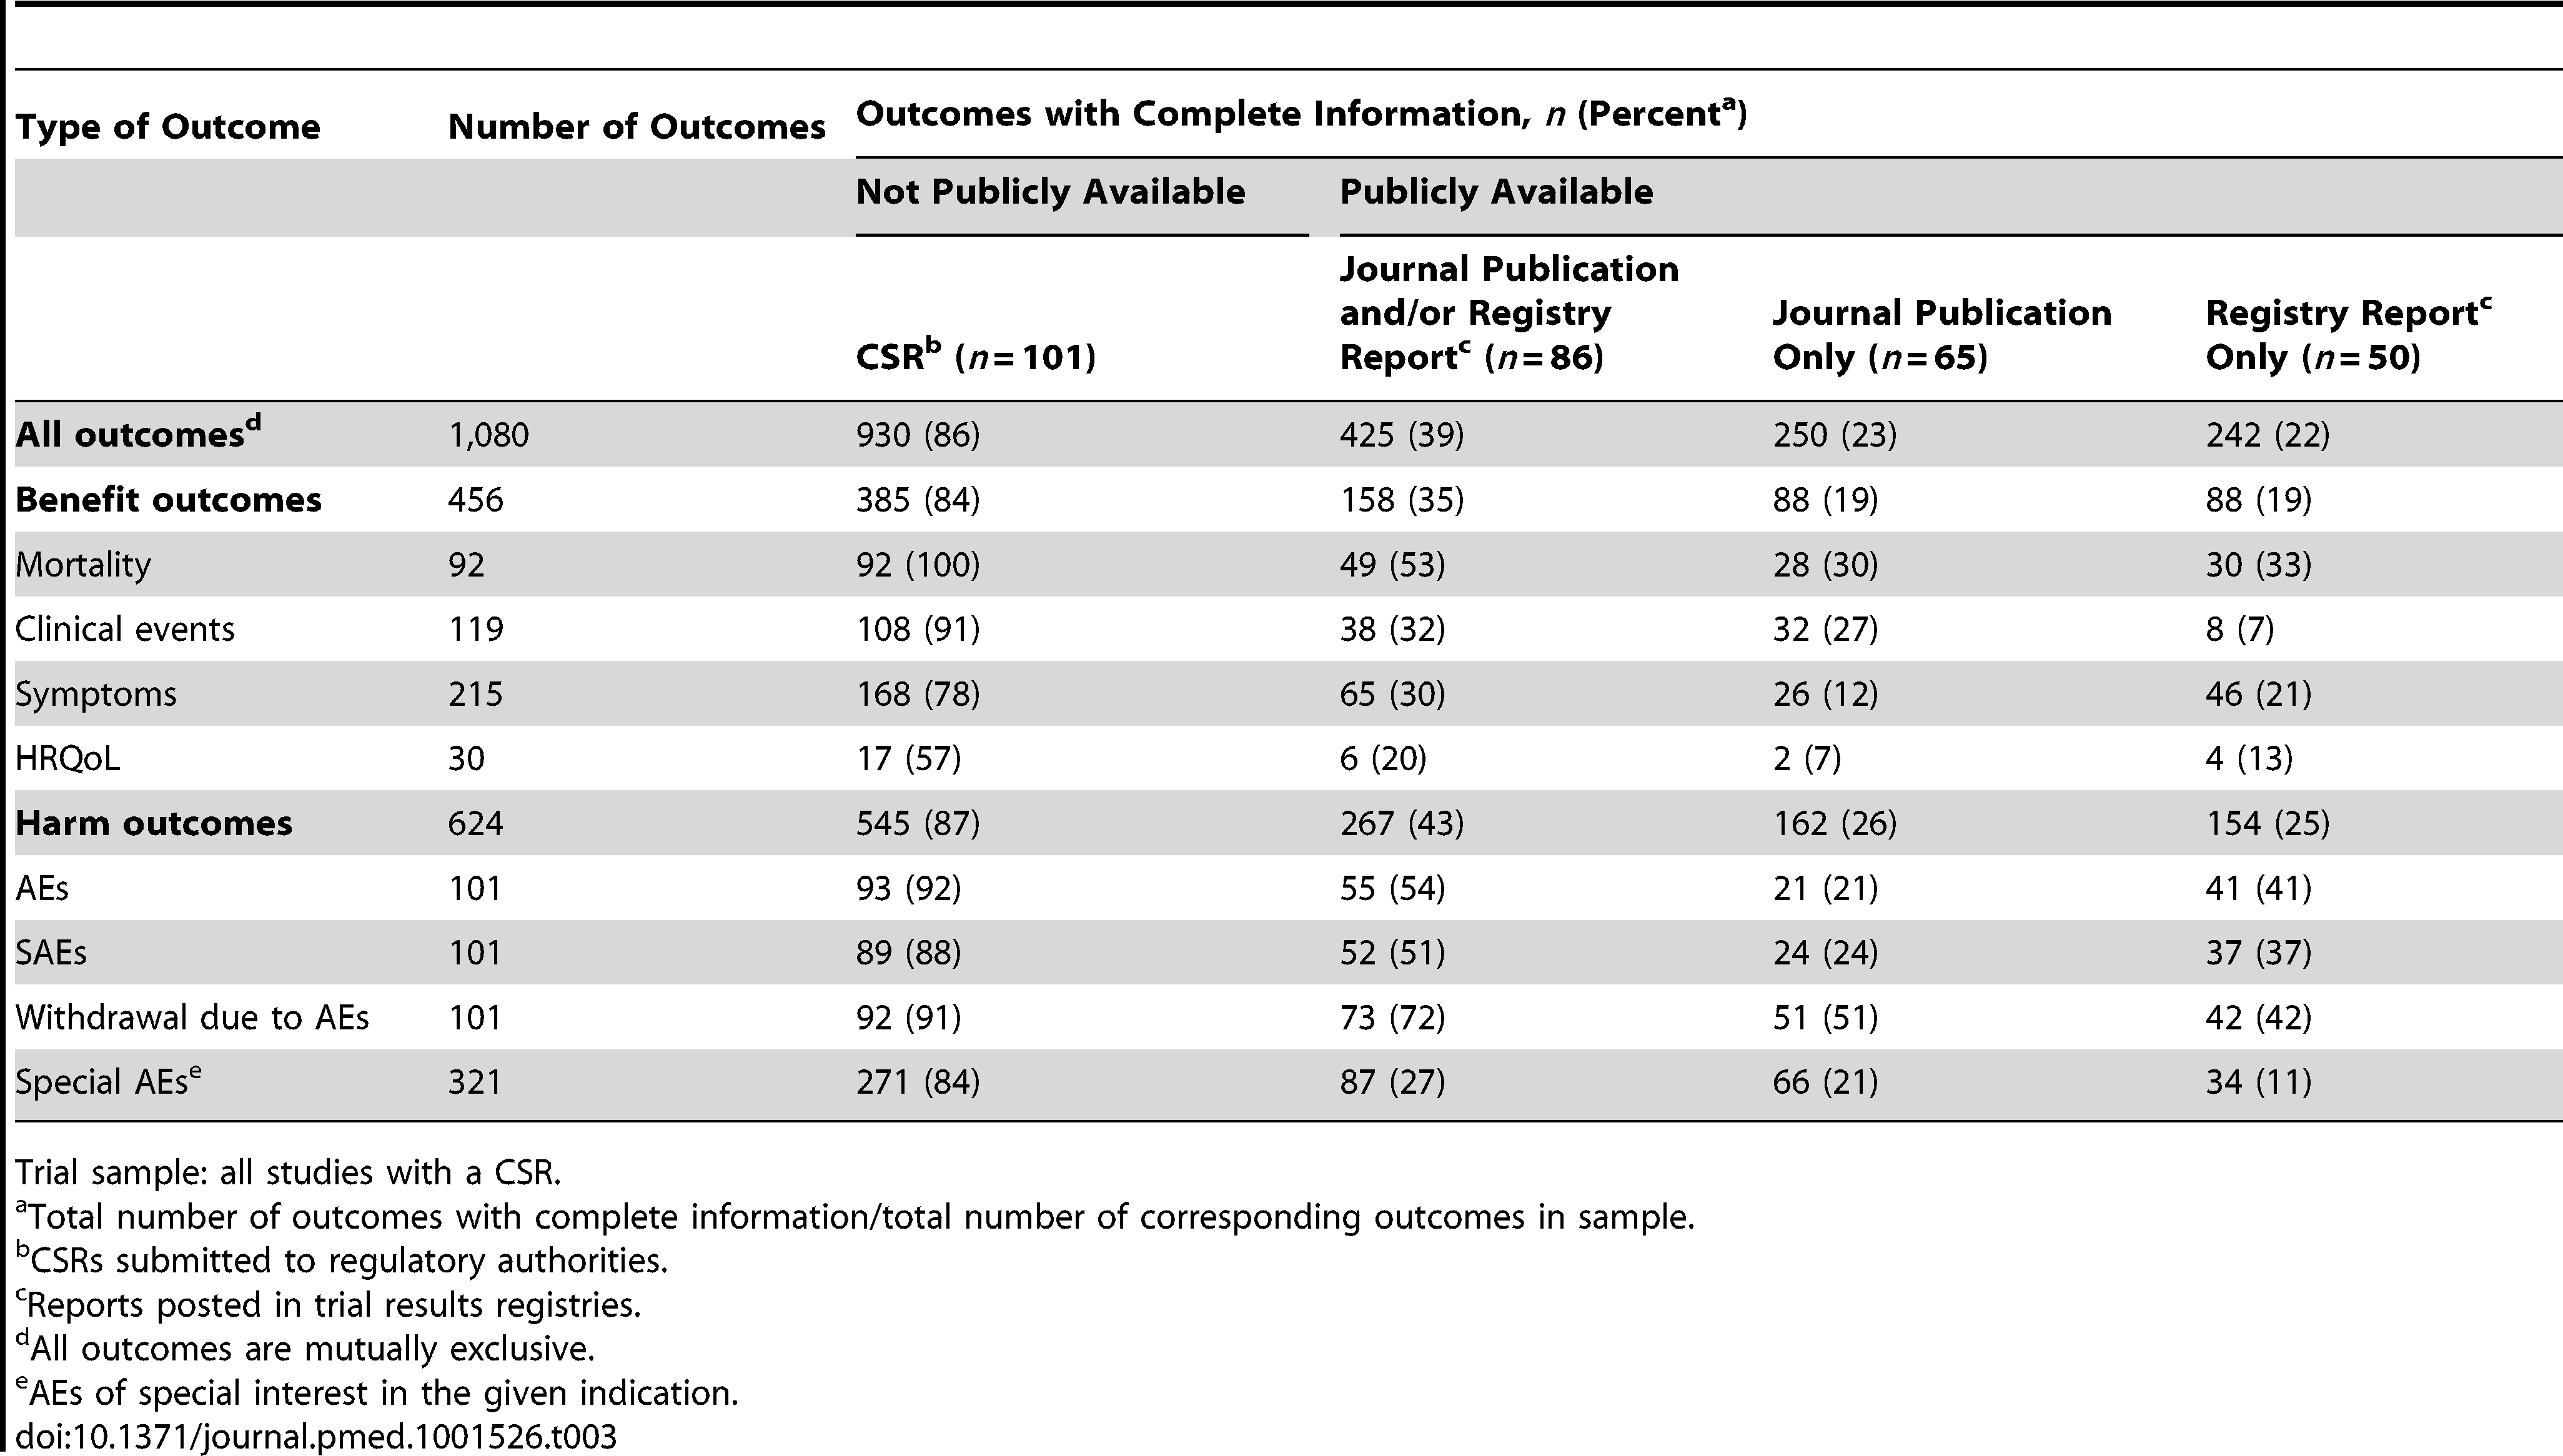 Completeness of information for trial outcomes in CSRs, registry reports, and journal publications.